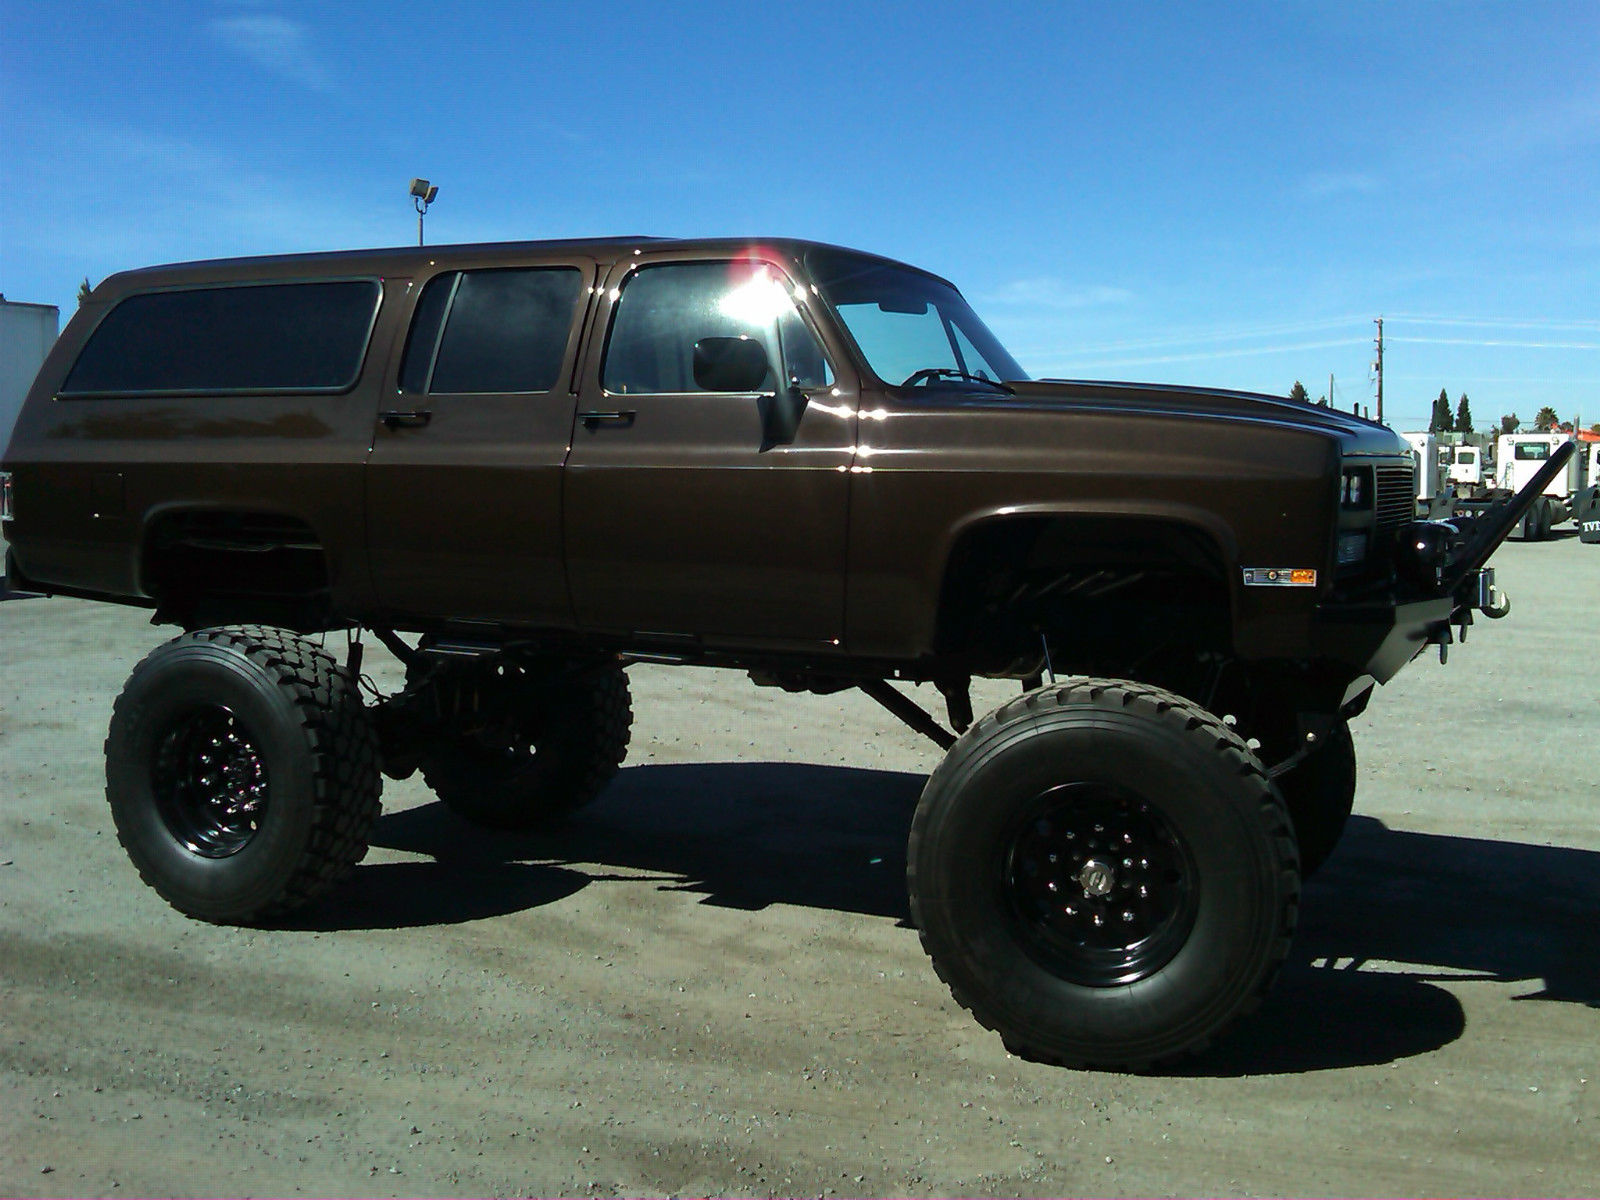 Lifted Chevy For Sale >> 1973 Chevrolet Suburban for sale